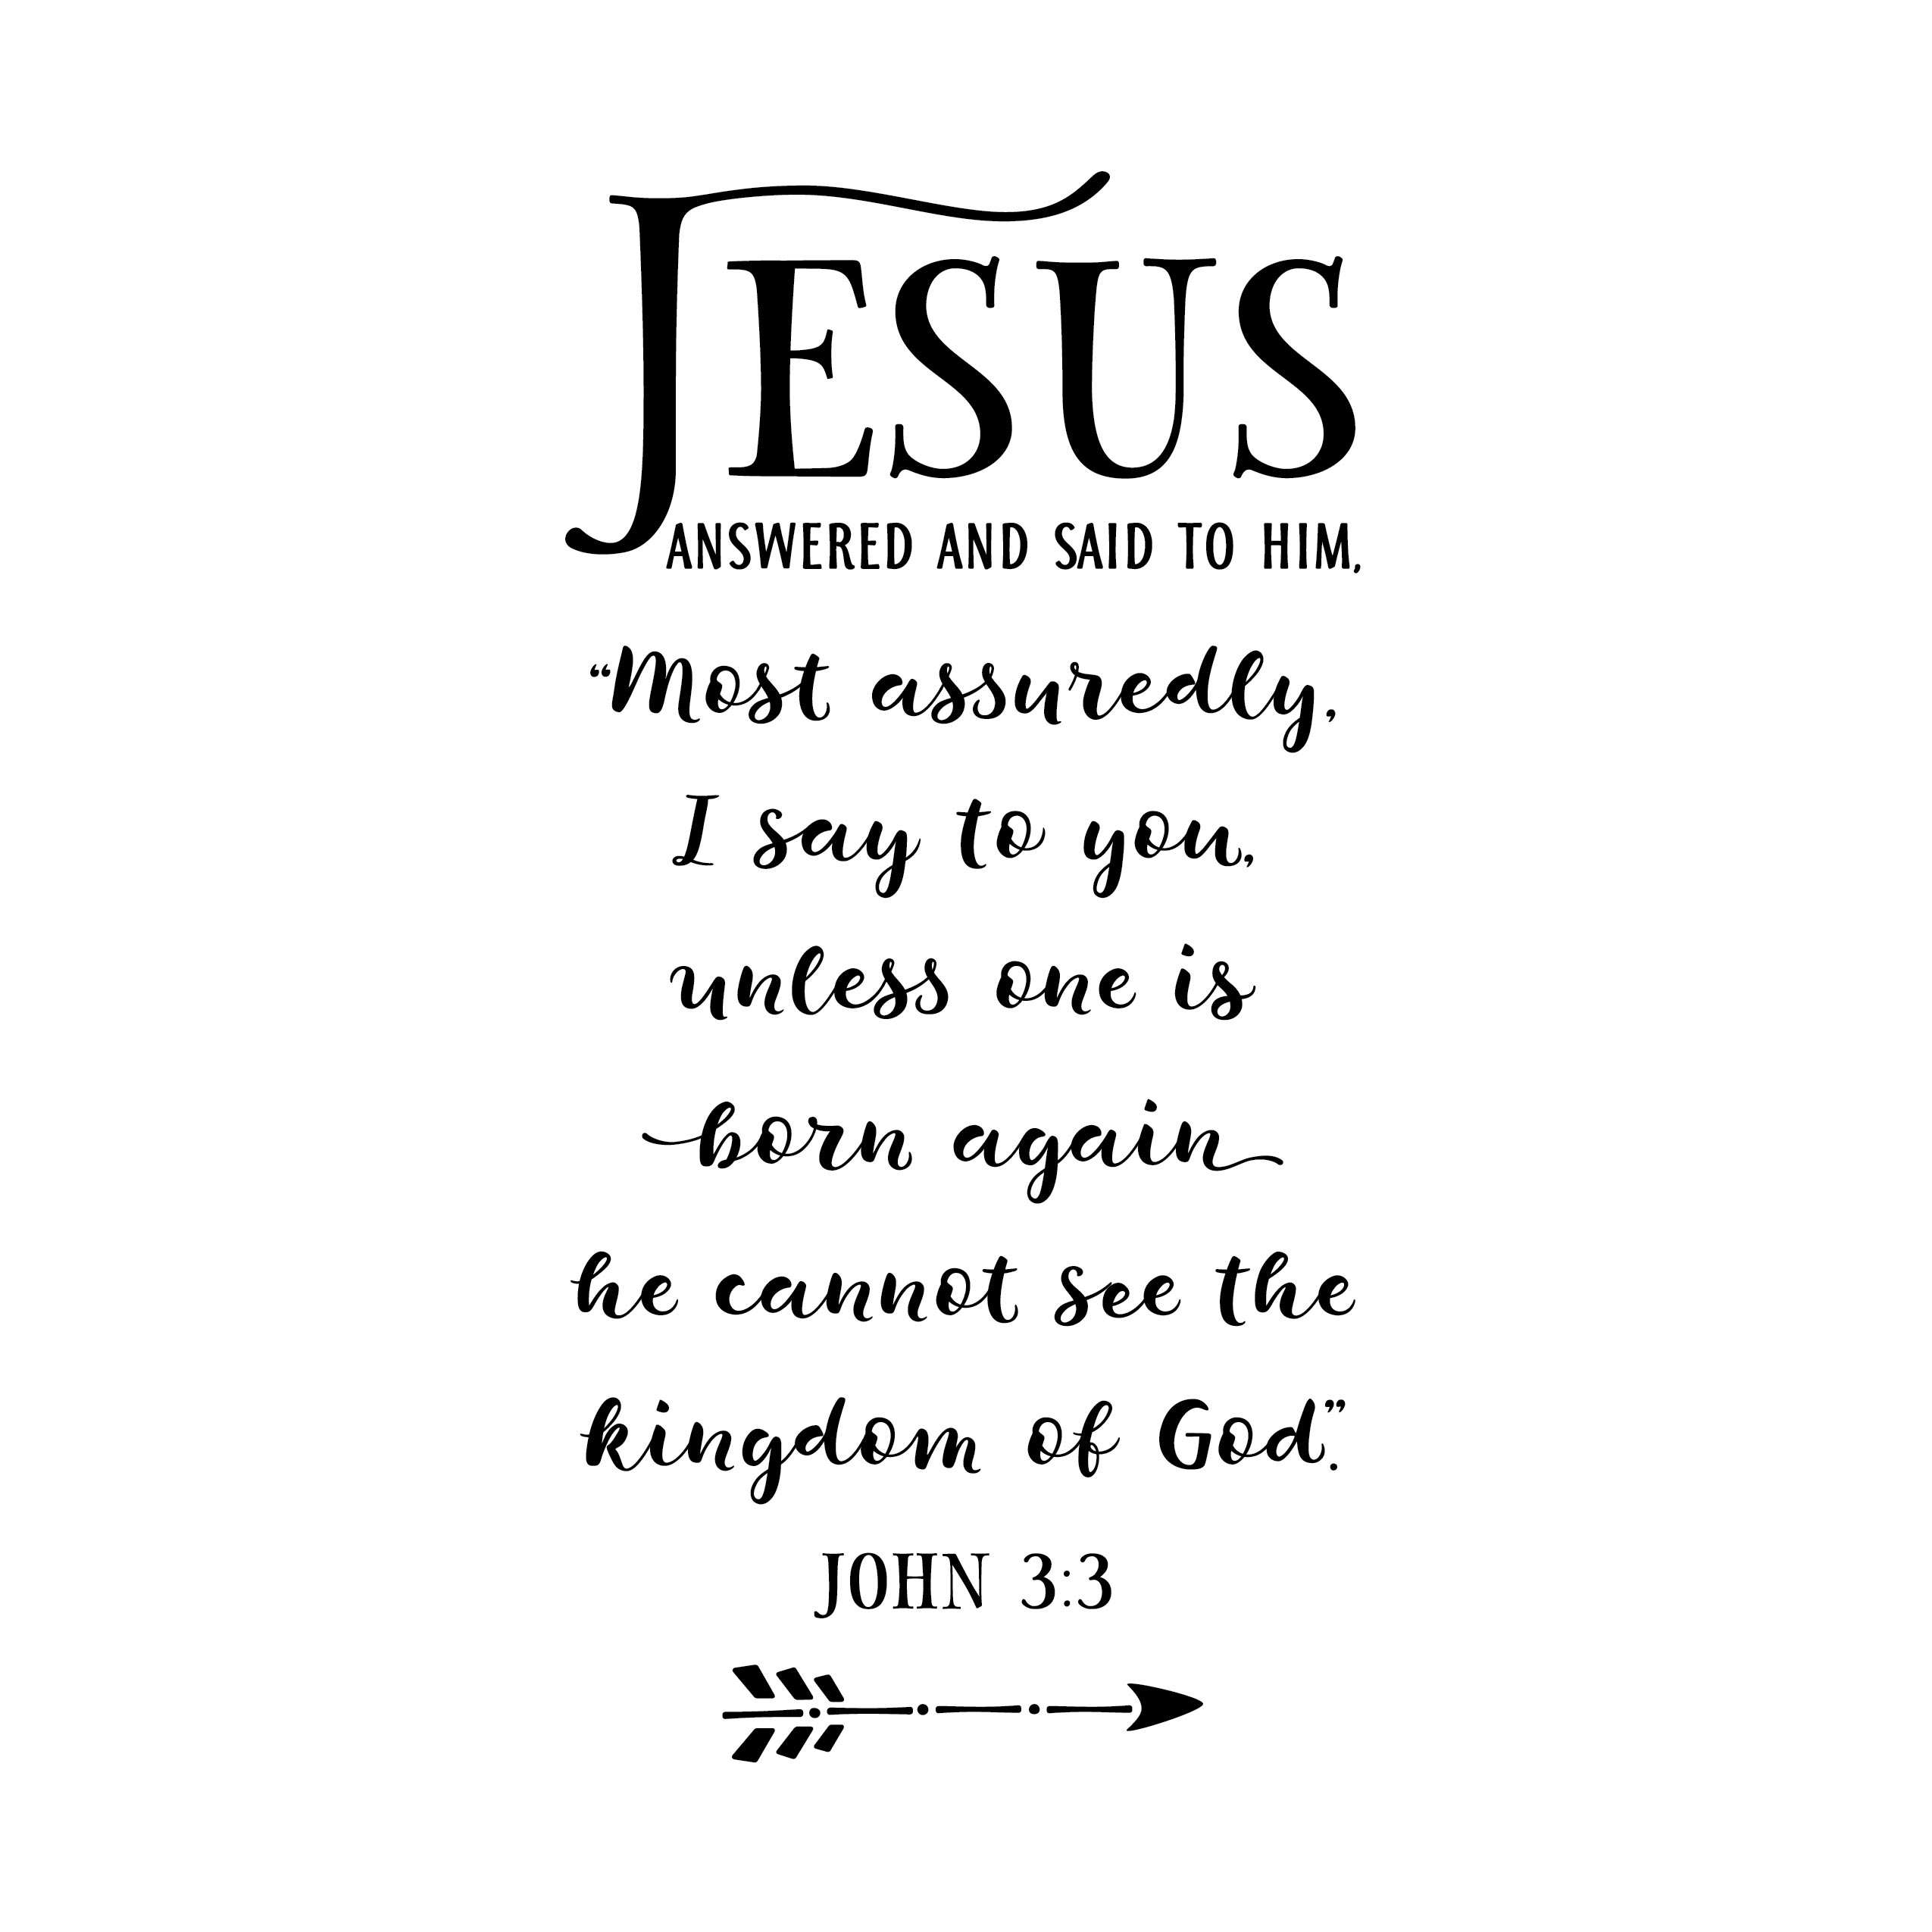 Youth Room Bible Verse Church decor wall decal John 3:3 unless one is born again he cannot see the kingdom of God vinyl JOH3V3-0001